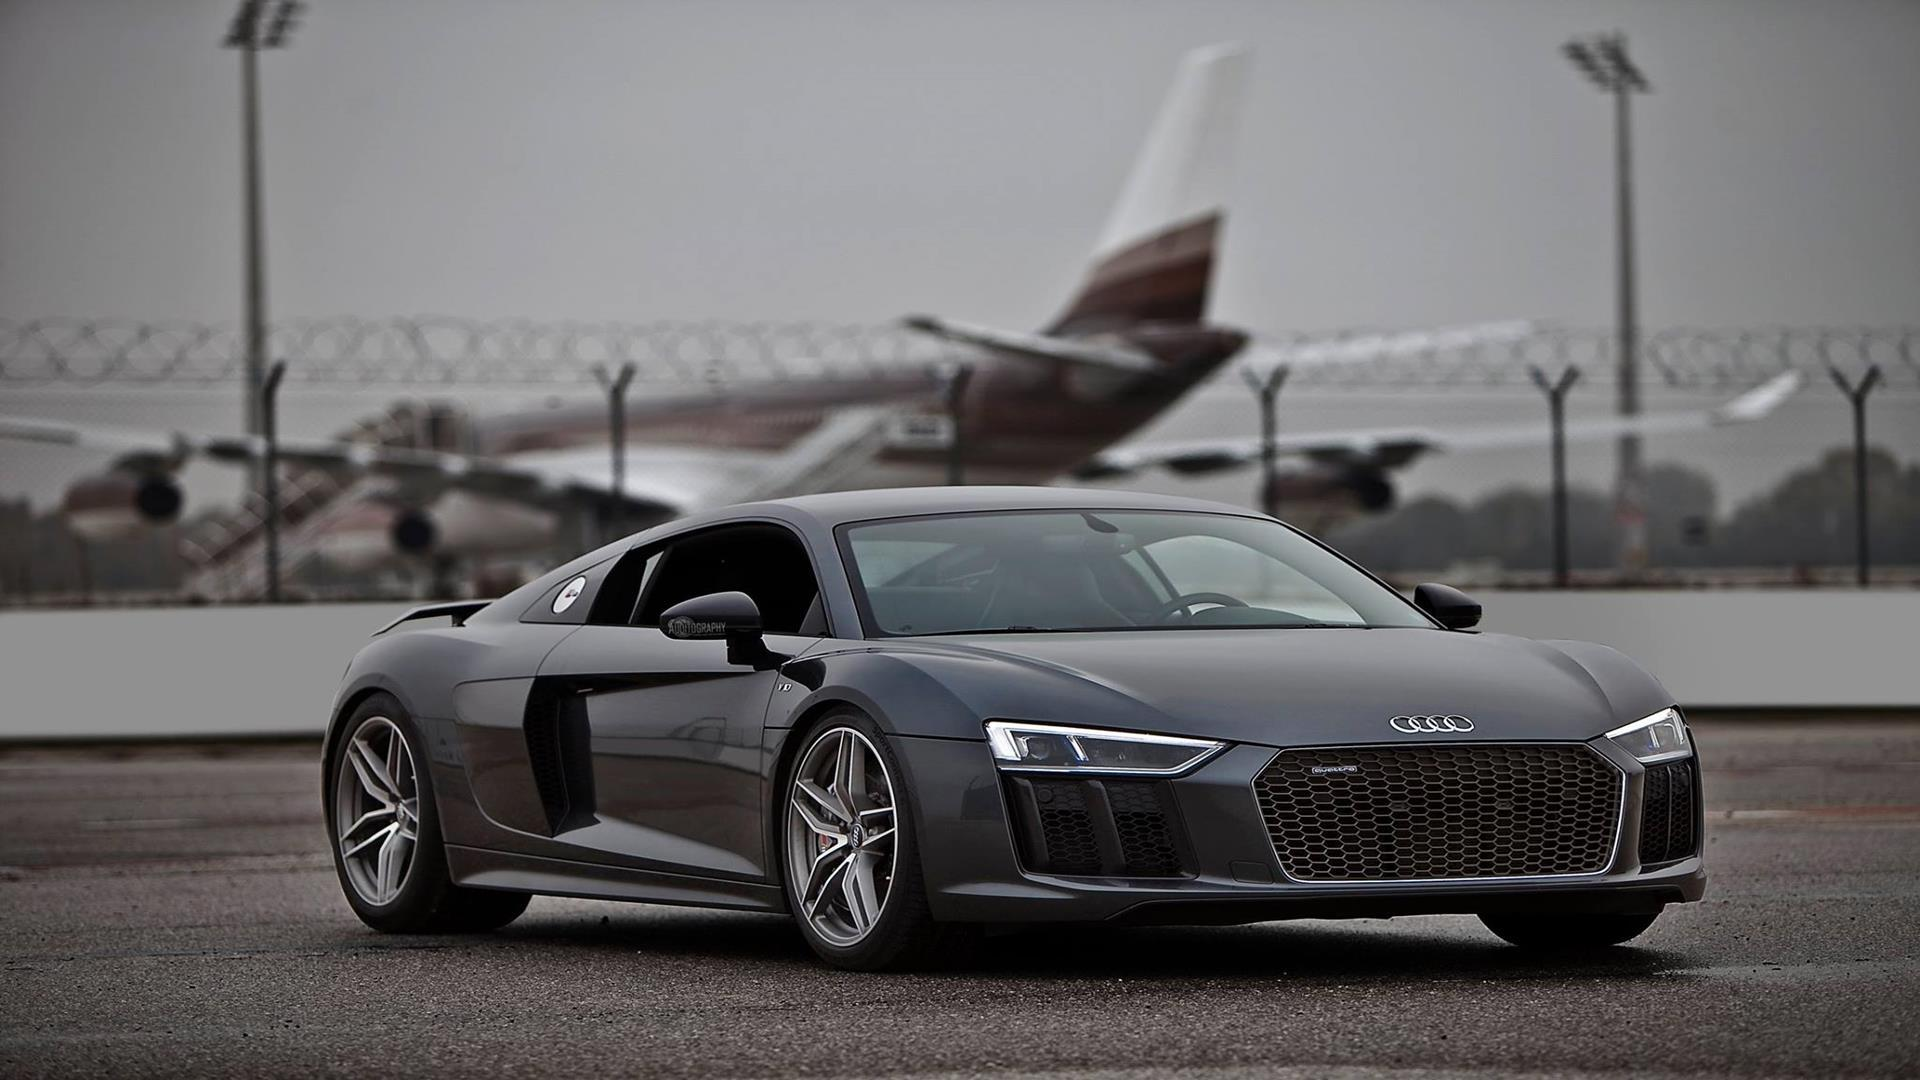 You Can Download 2016 Audi R8 V10 Plus Fullhd Wallpapers 1920x1080